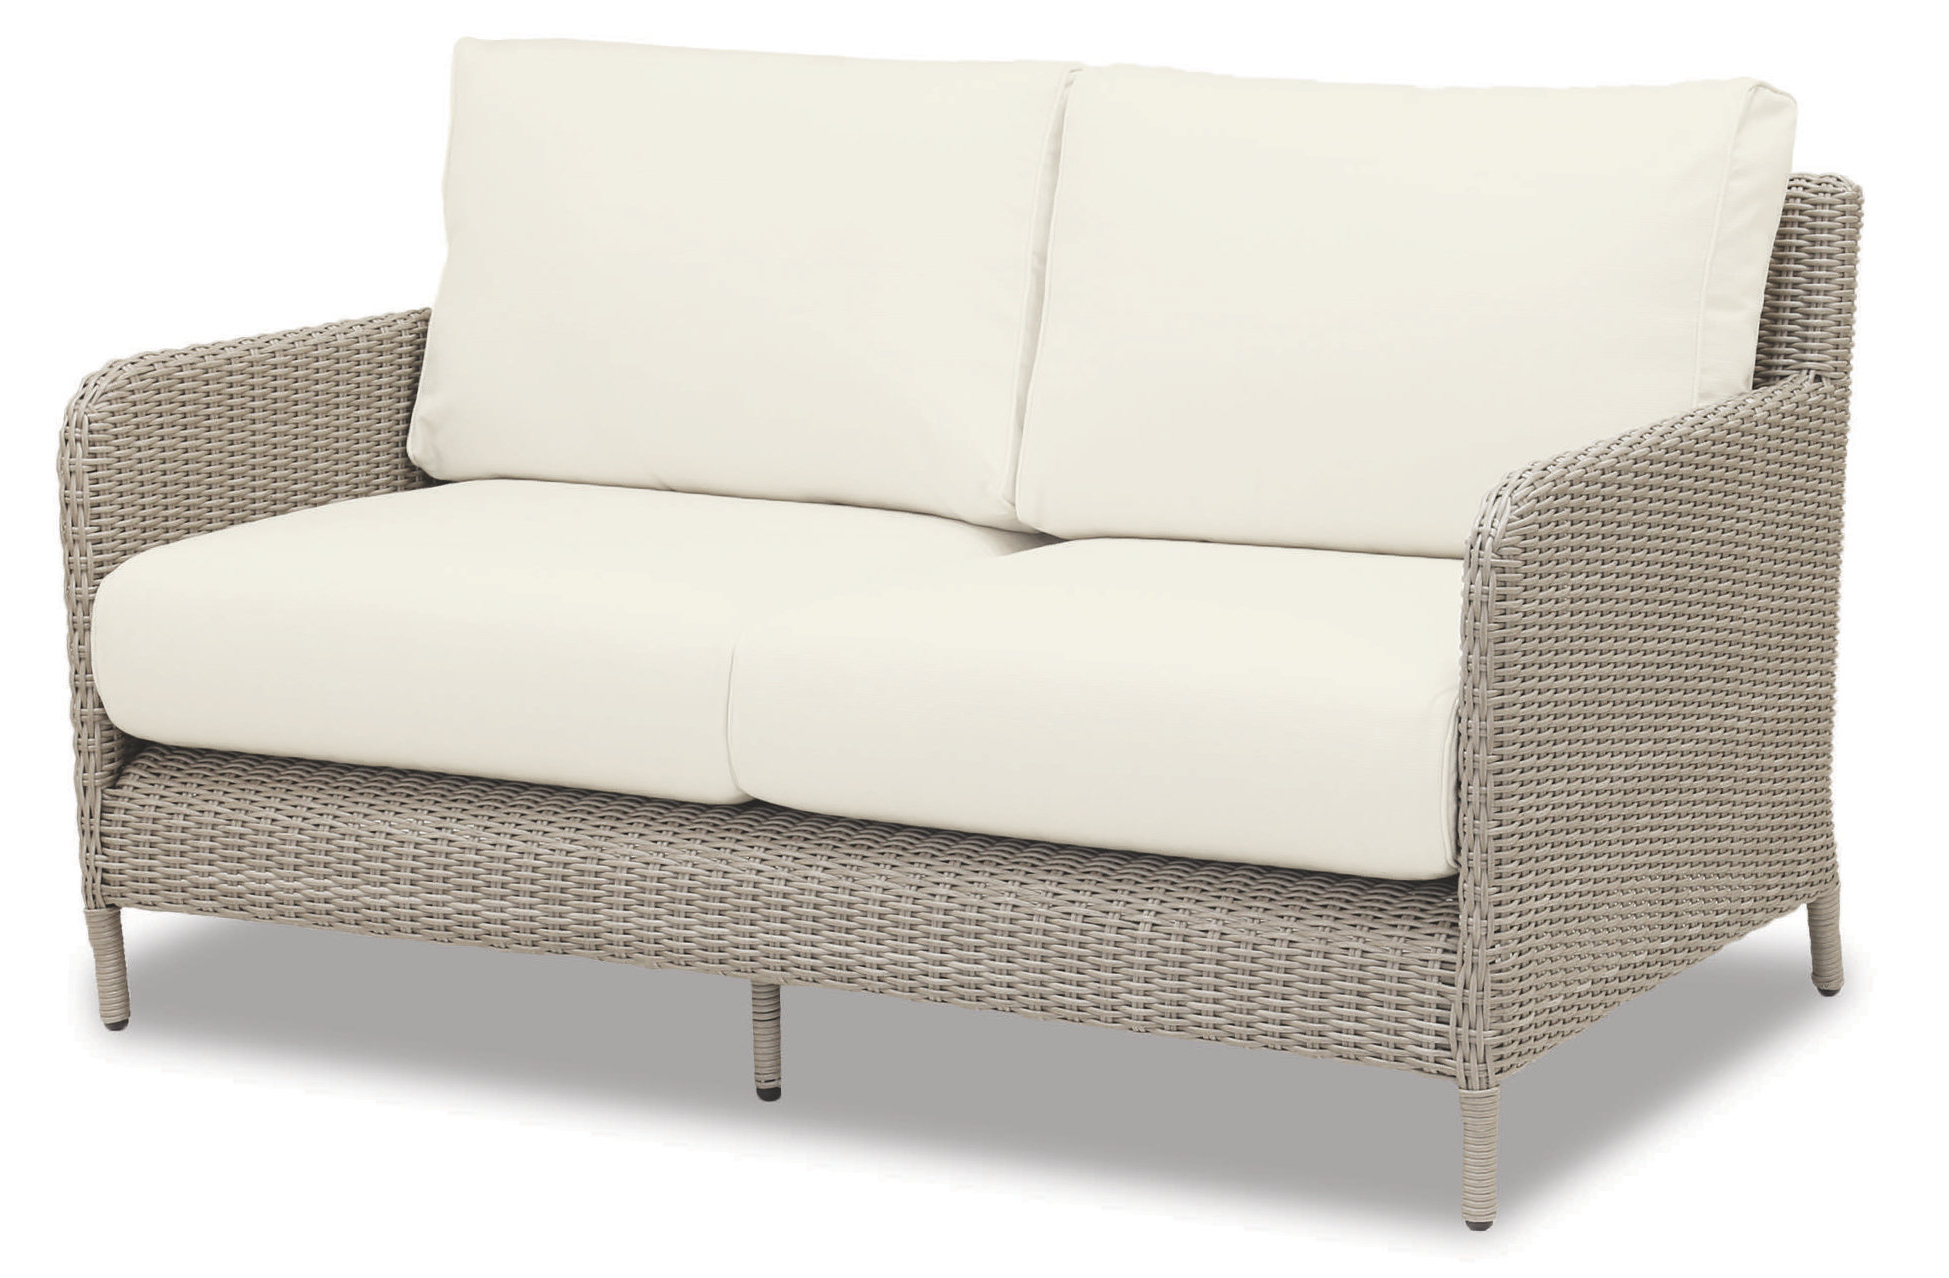 Widely Used Castelli Loveseats With Cushions Regarding Manhattan Loveseat With Cushions (View 14 of 20)